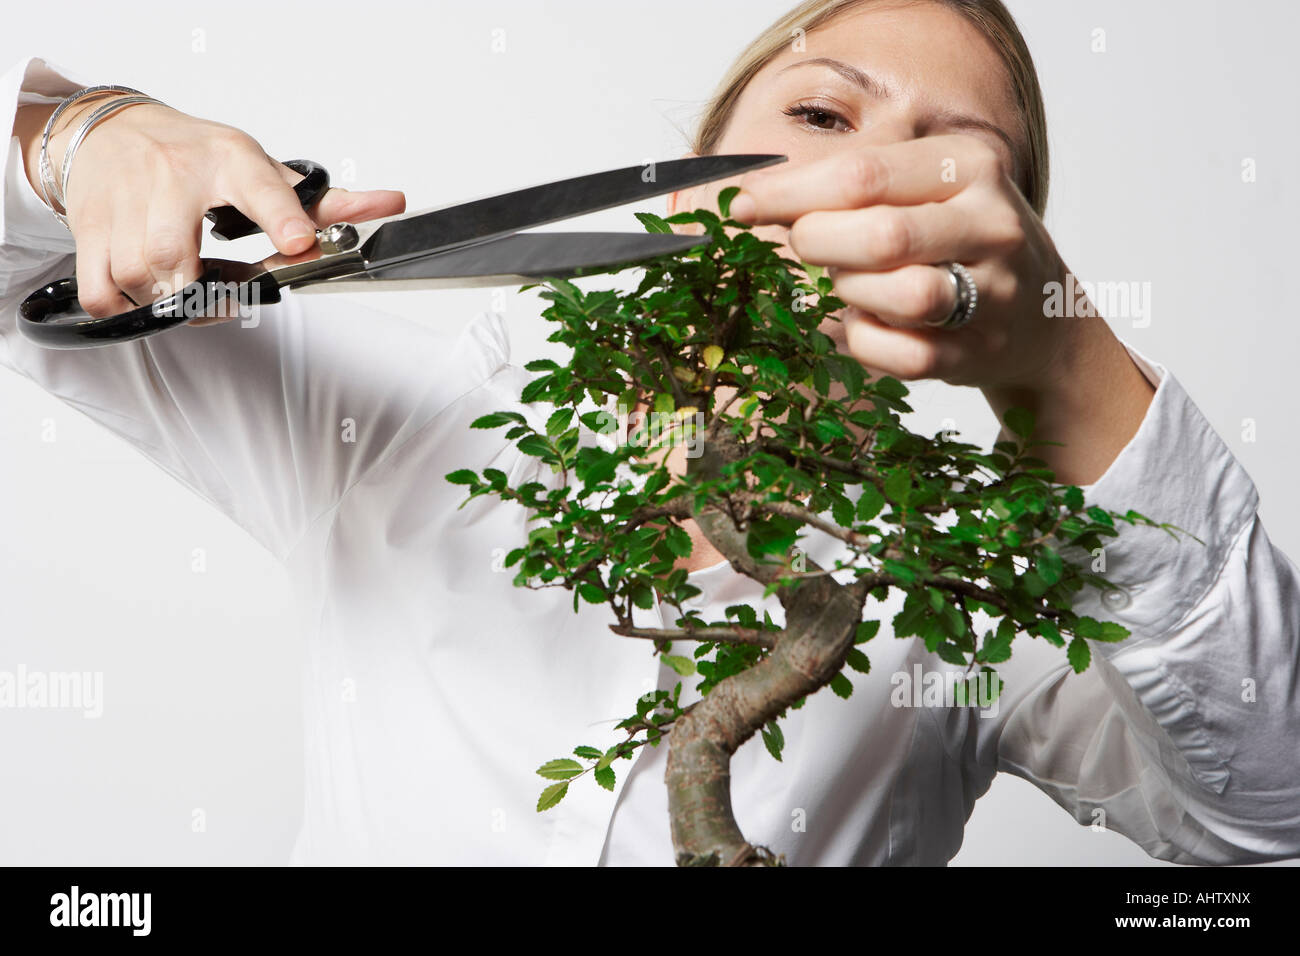 Young business woman at desk pruning Bonsai tree. - Stock Image